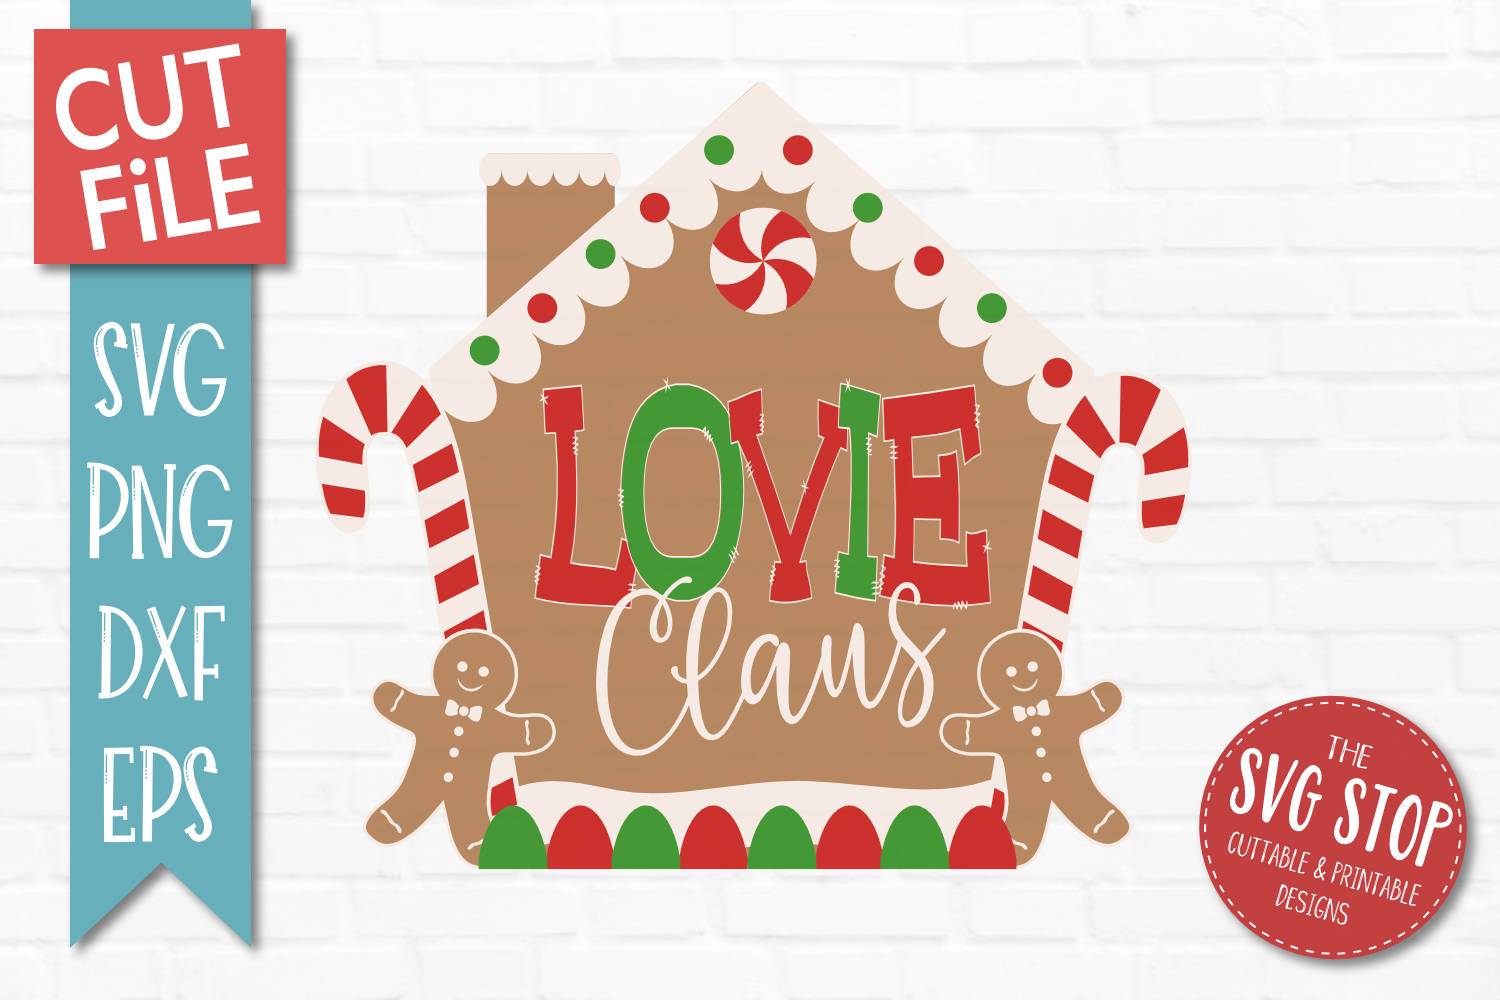 Lovie Claus Gingerbread Christmas SVG, PNG, DXF, EPS example image 1